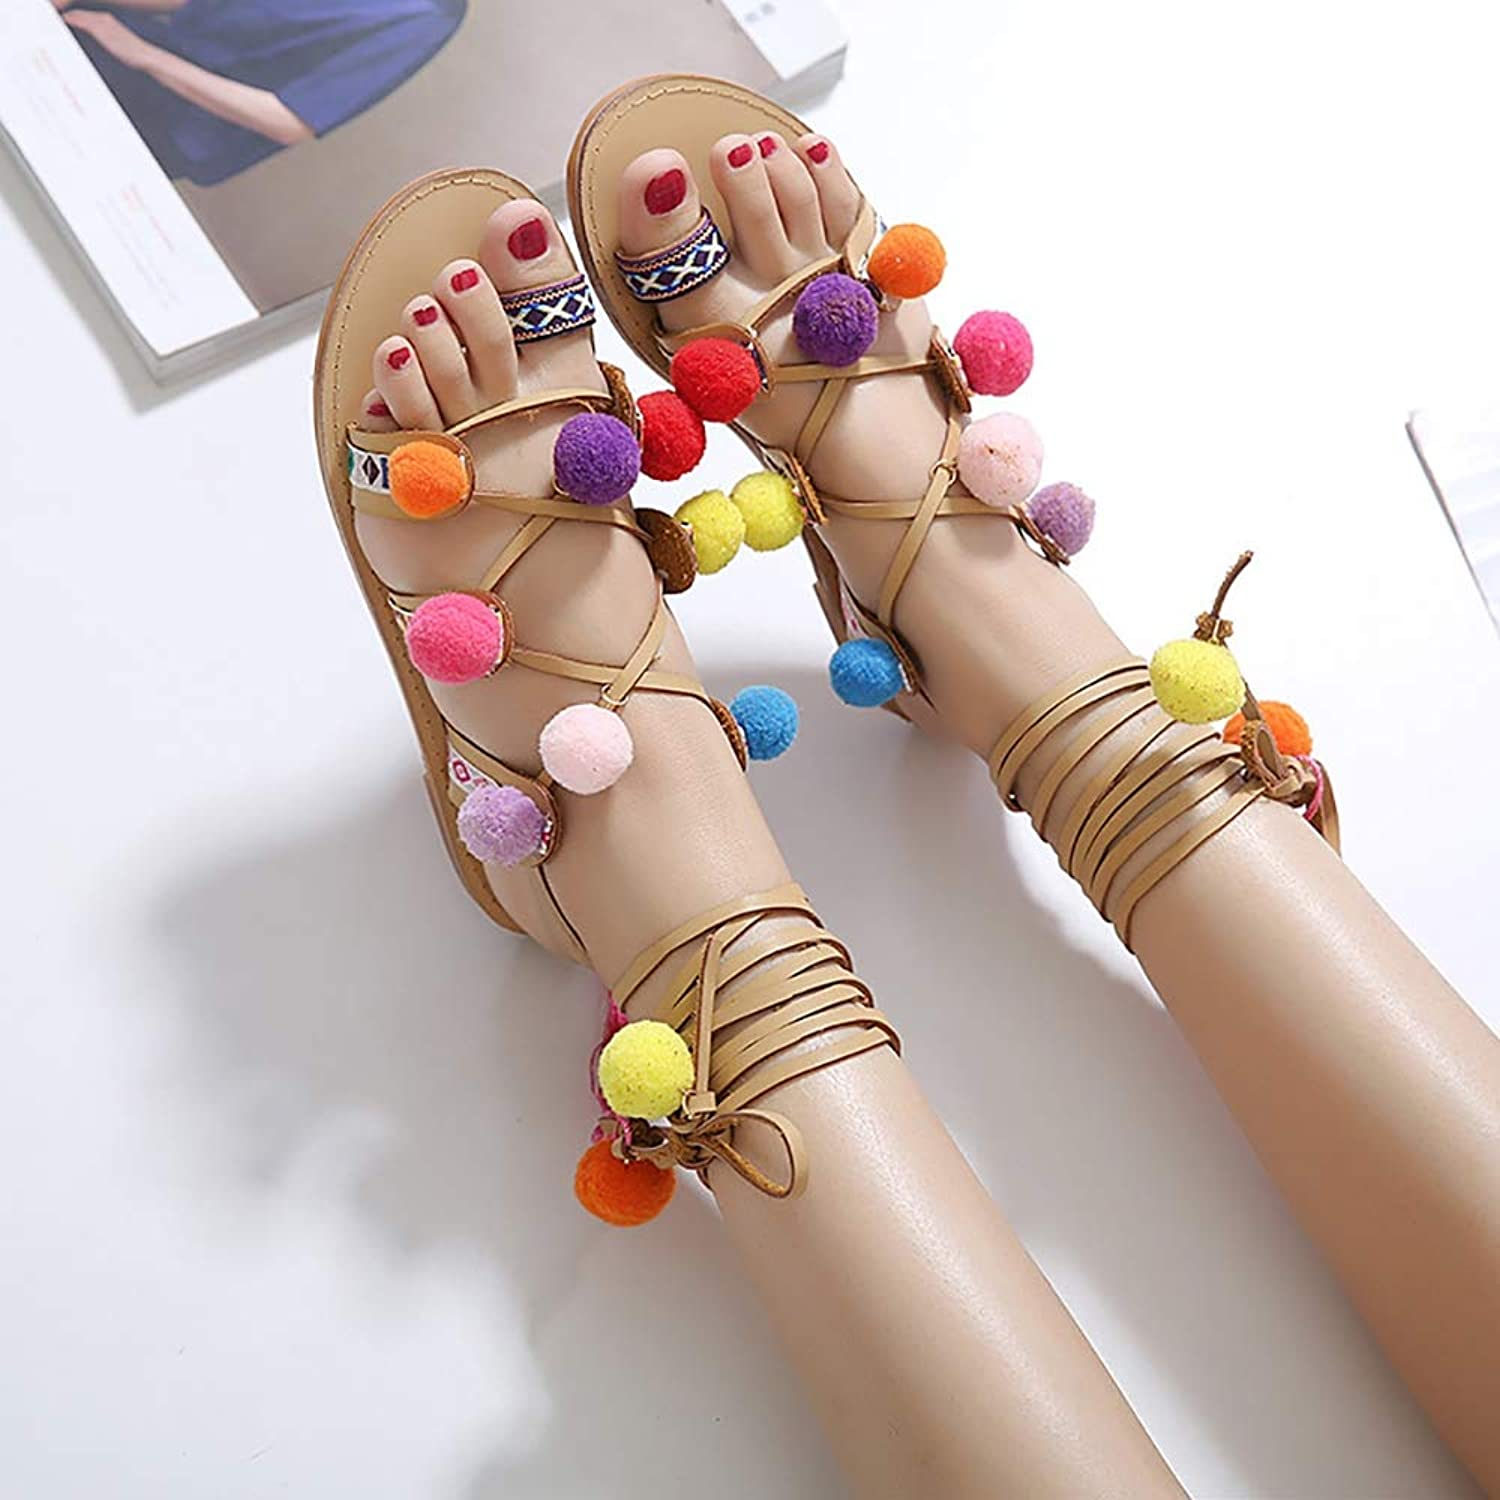 Women's Beach Sandals,colorful Balls with Straps Cute Sandals shoes Open Toe Perforated Lace up Elastic Side Stacked Heel Sandal,38